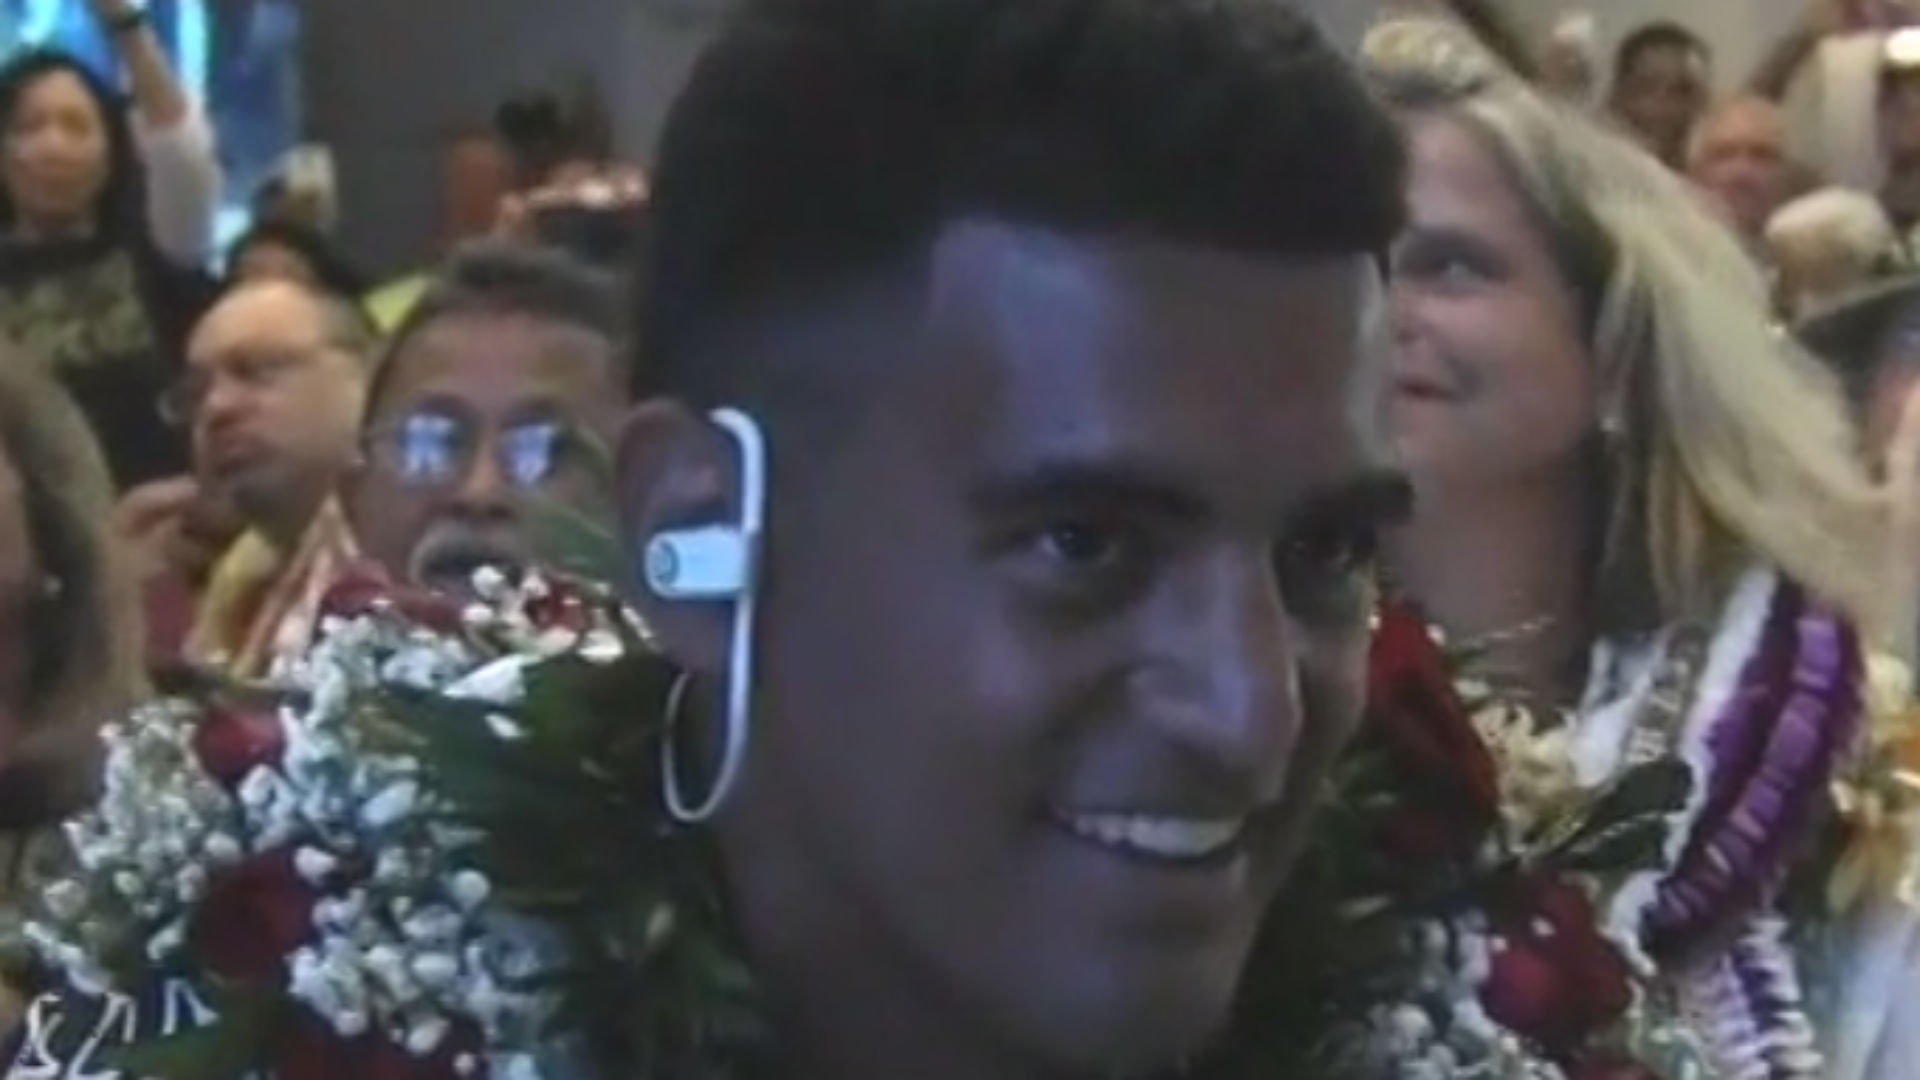 Roger Goodell apologized to Marcus Mariota for botching his name